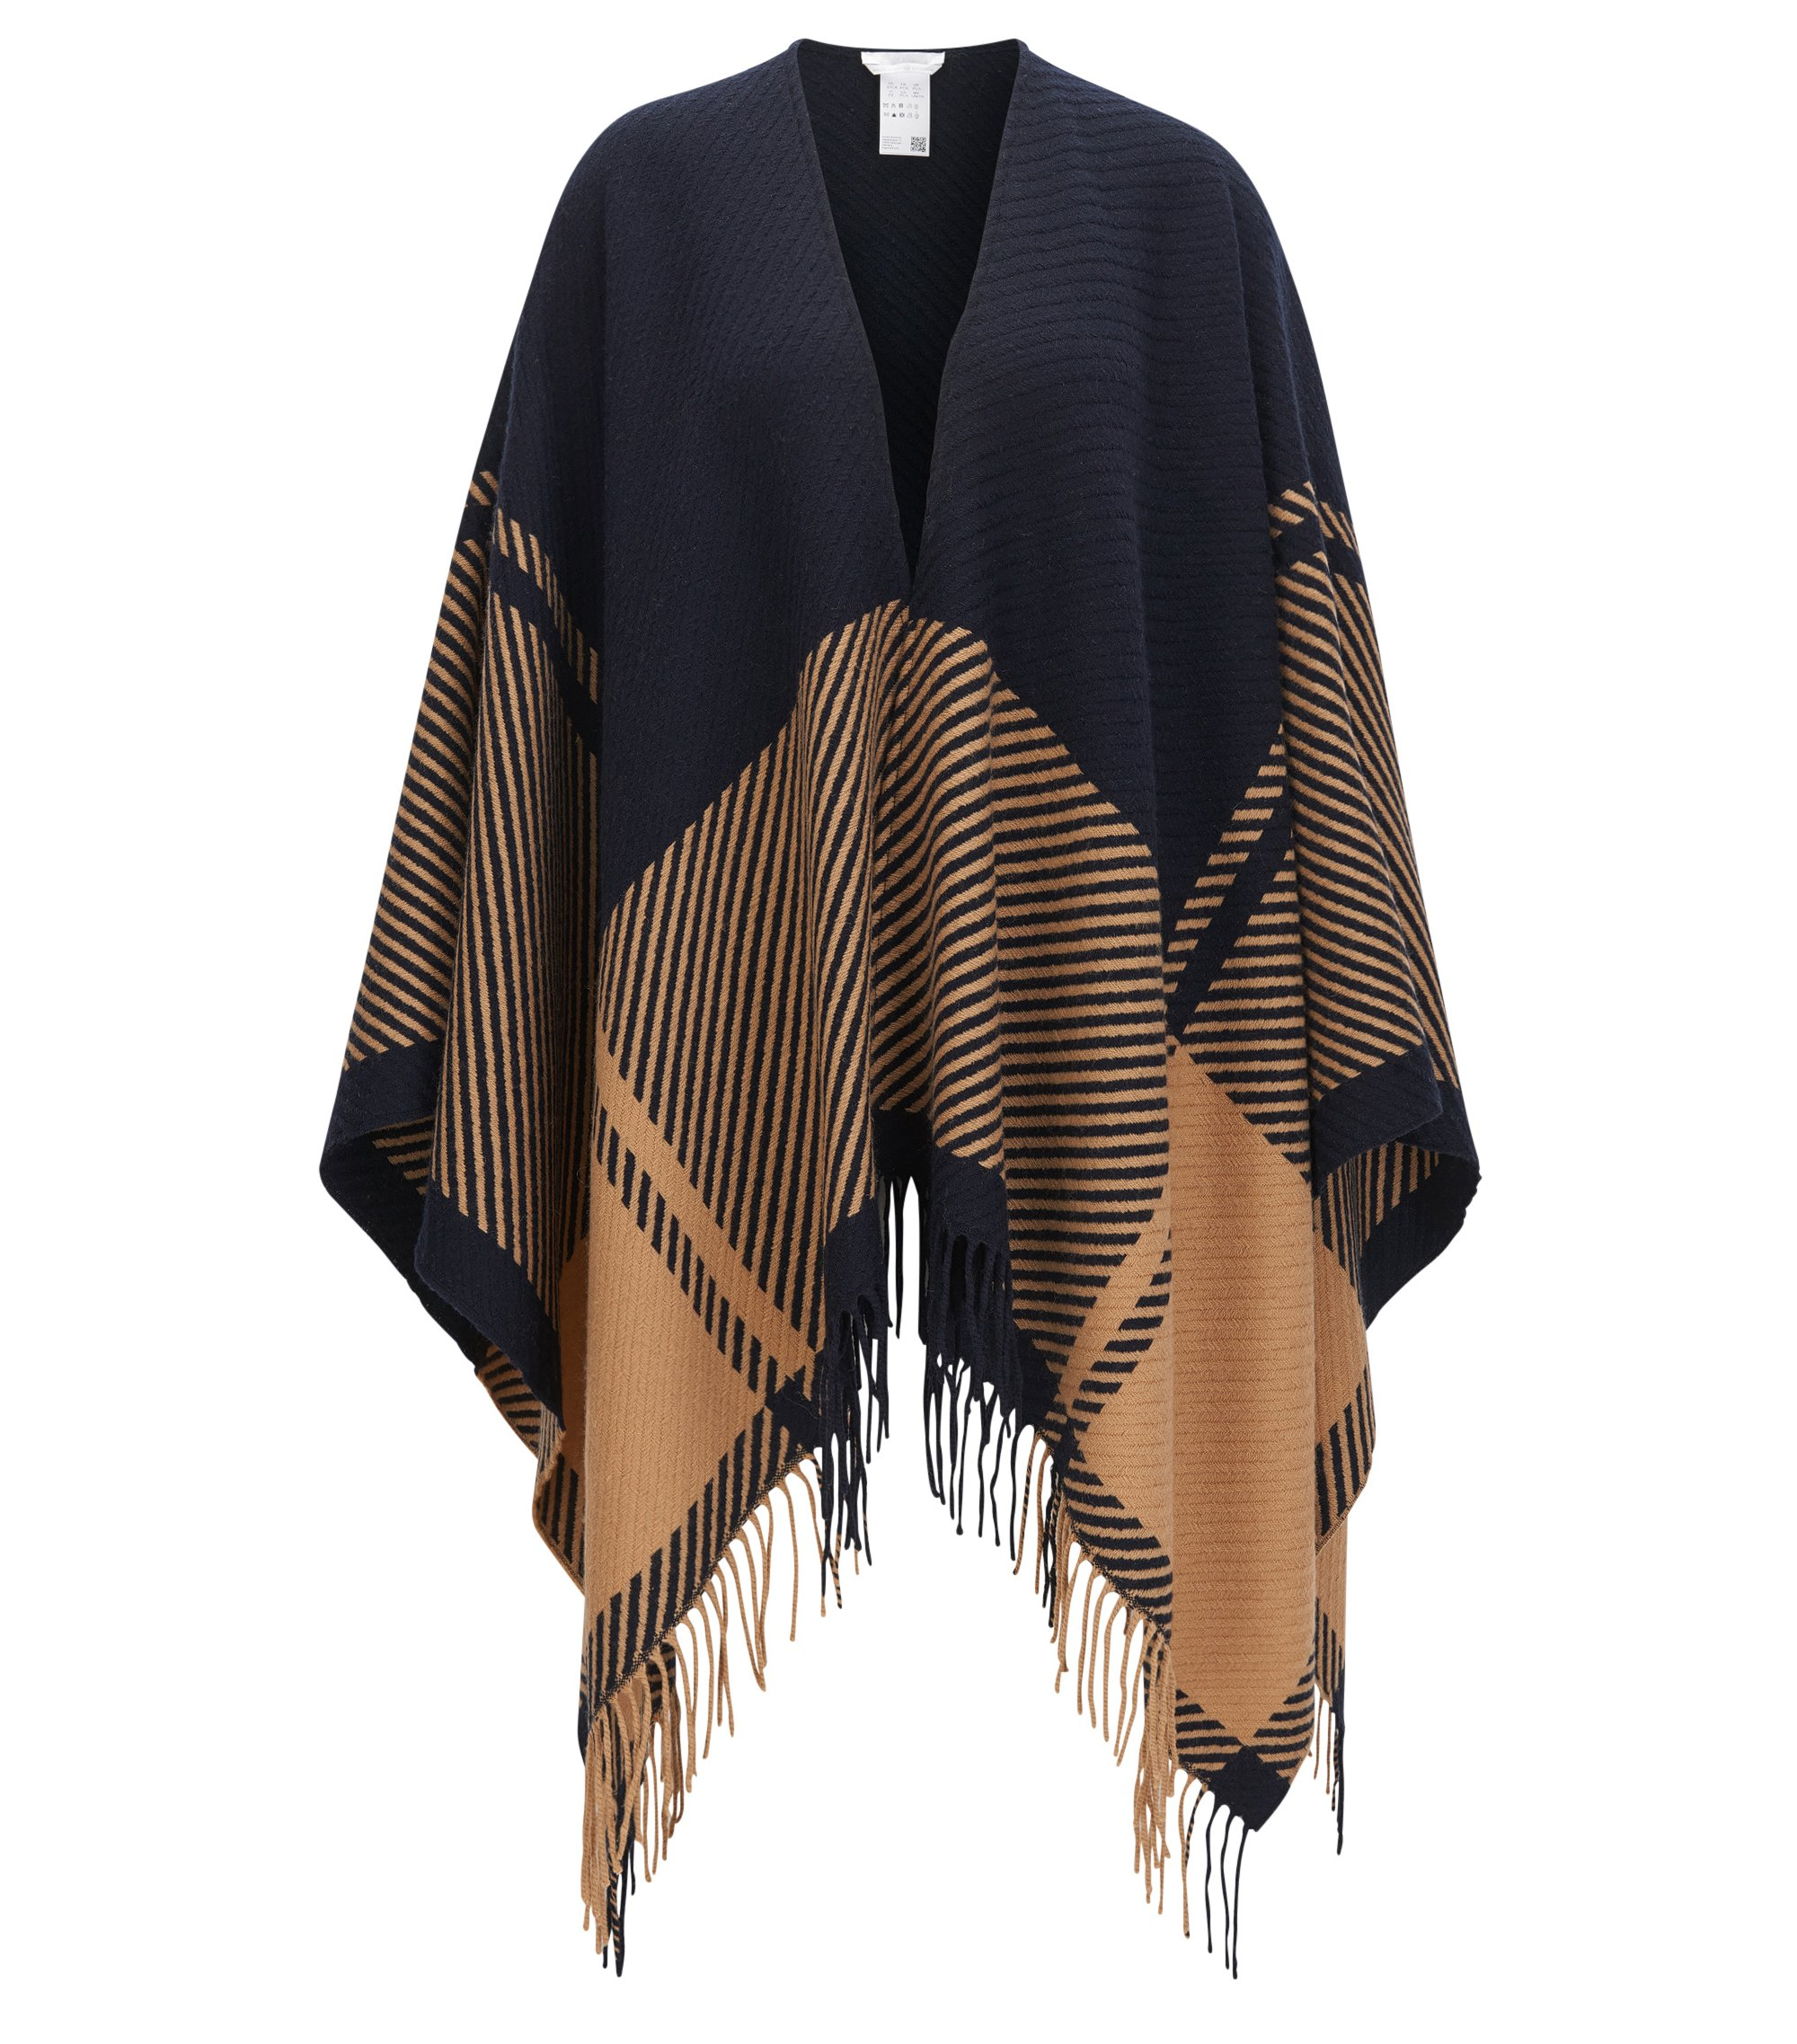 Plaid Virgin Wool-Cashmere Shawl | Lamiky, Patterned